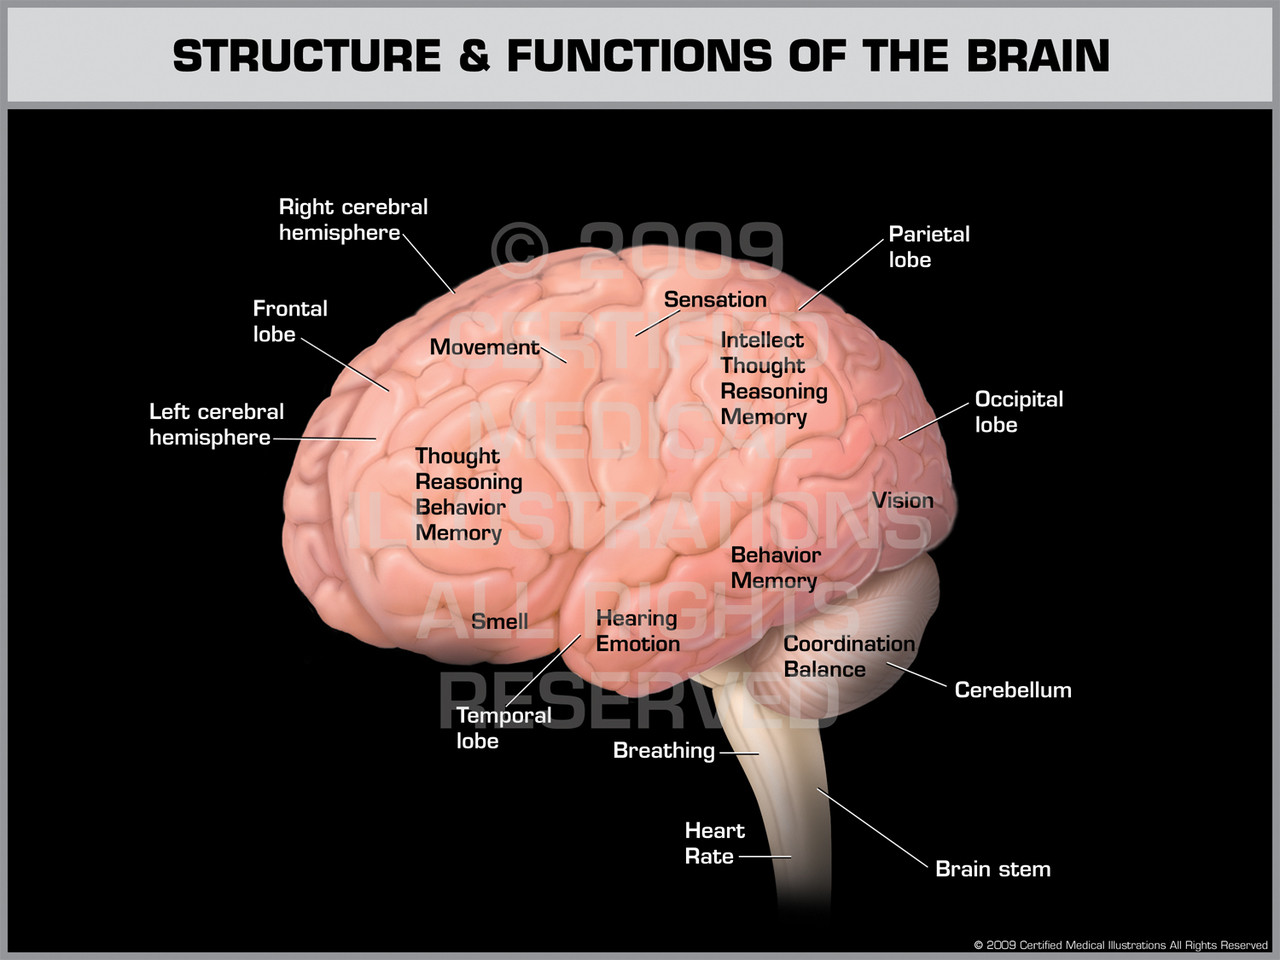 Structure & Functions of the Brain